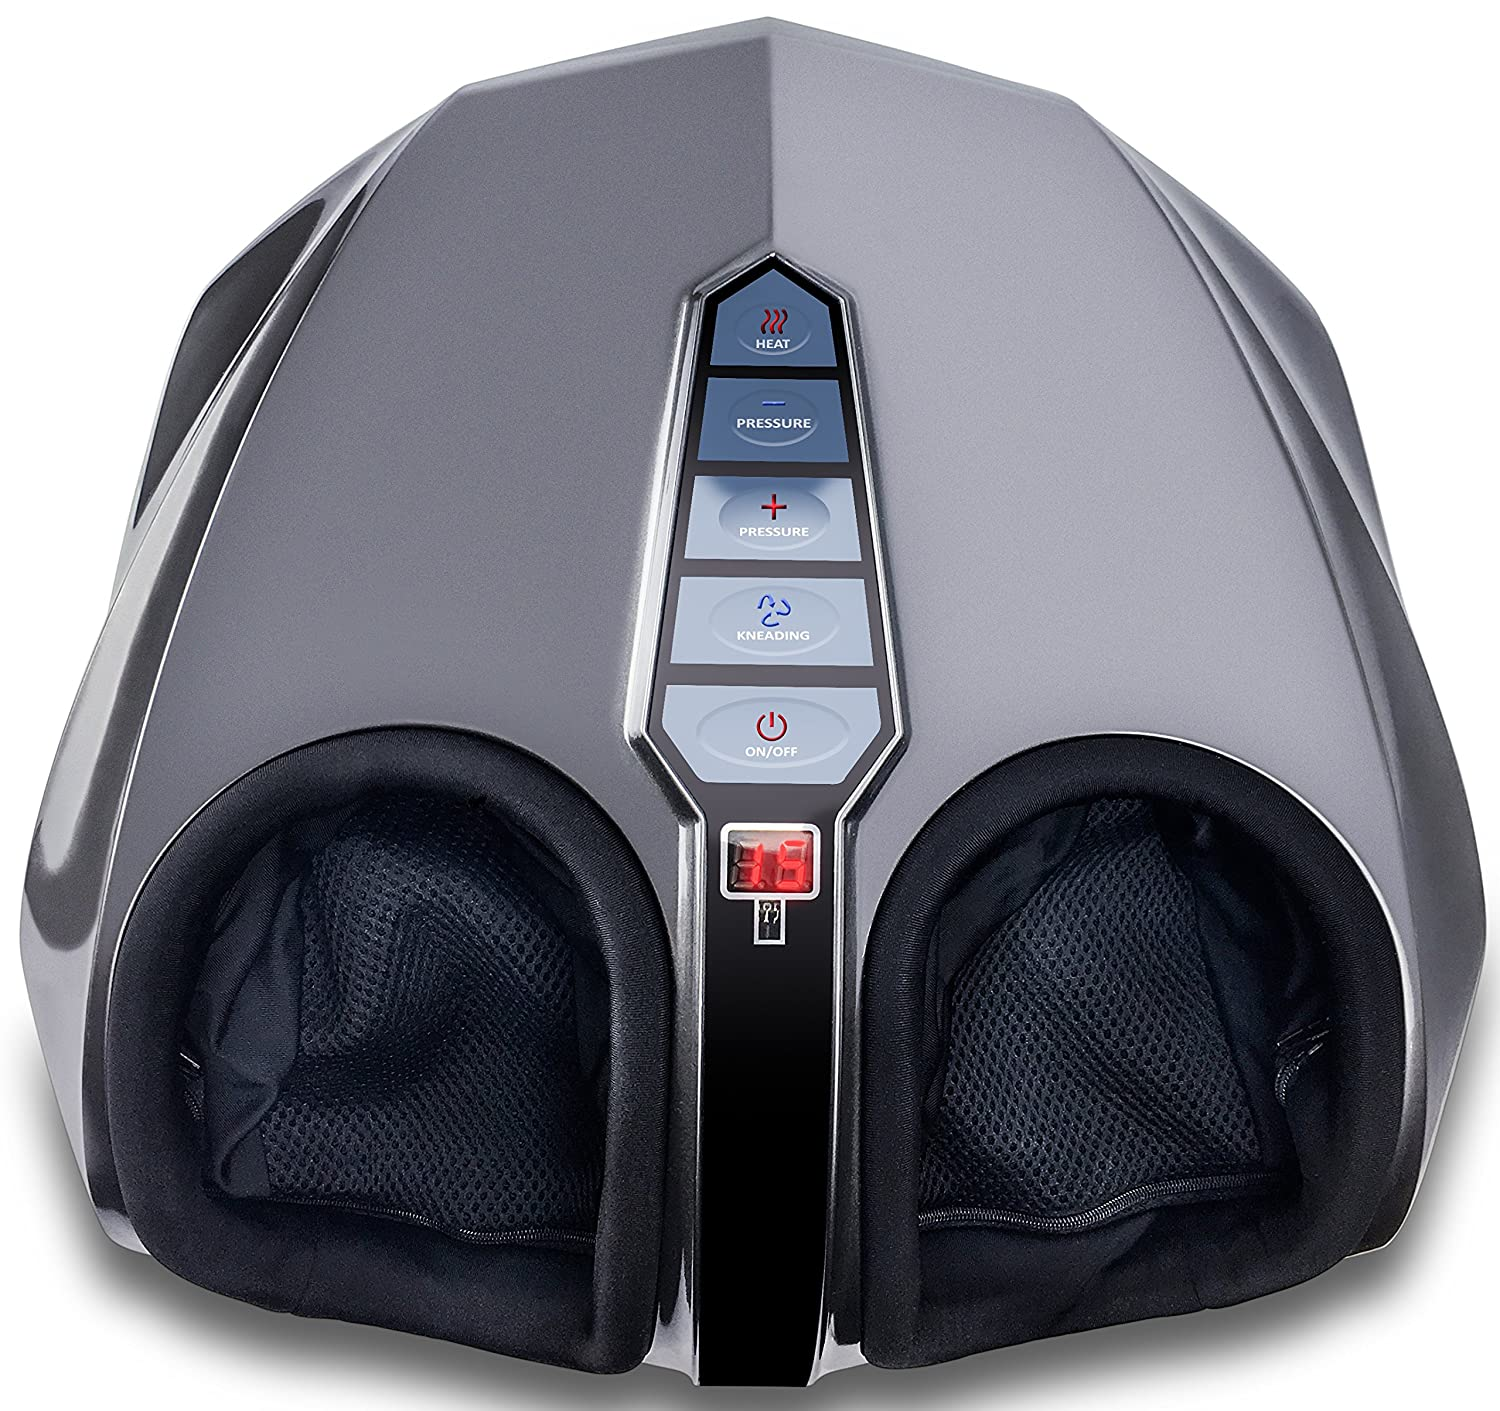 Miko Shiatsu Foot Massager review